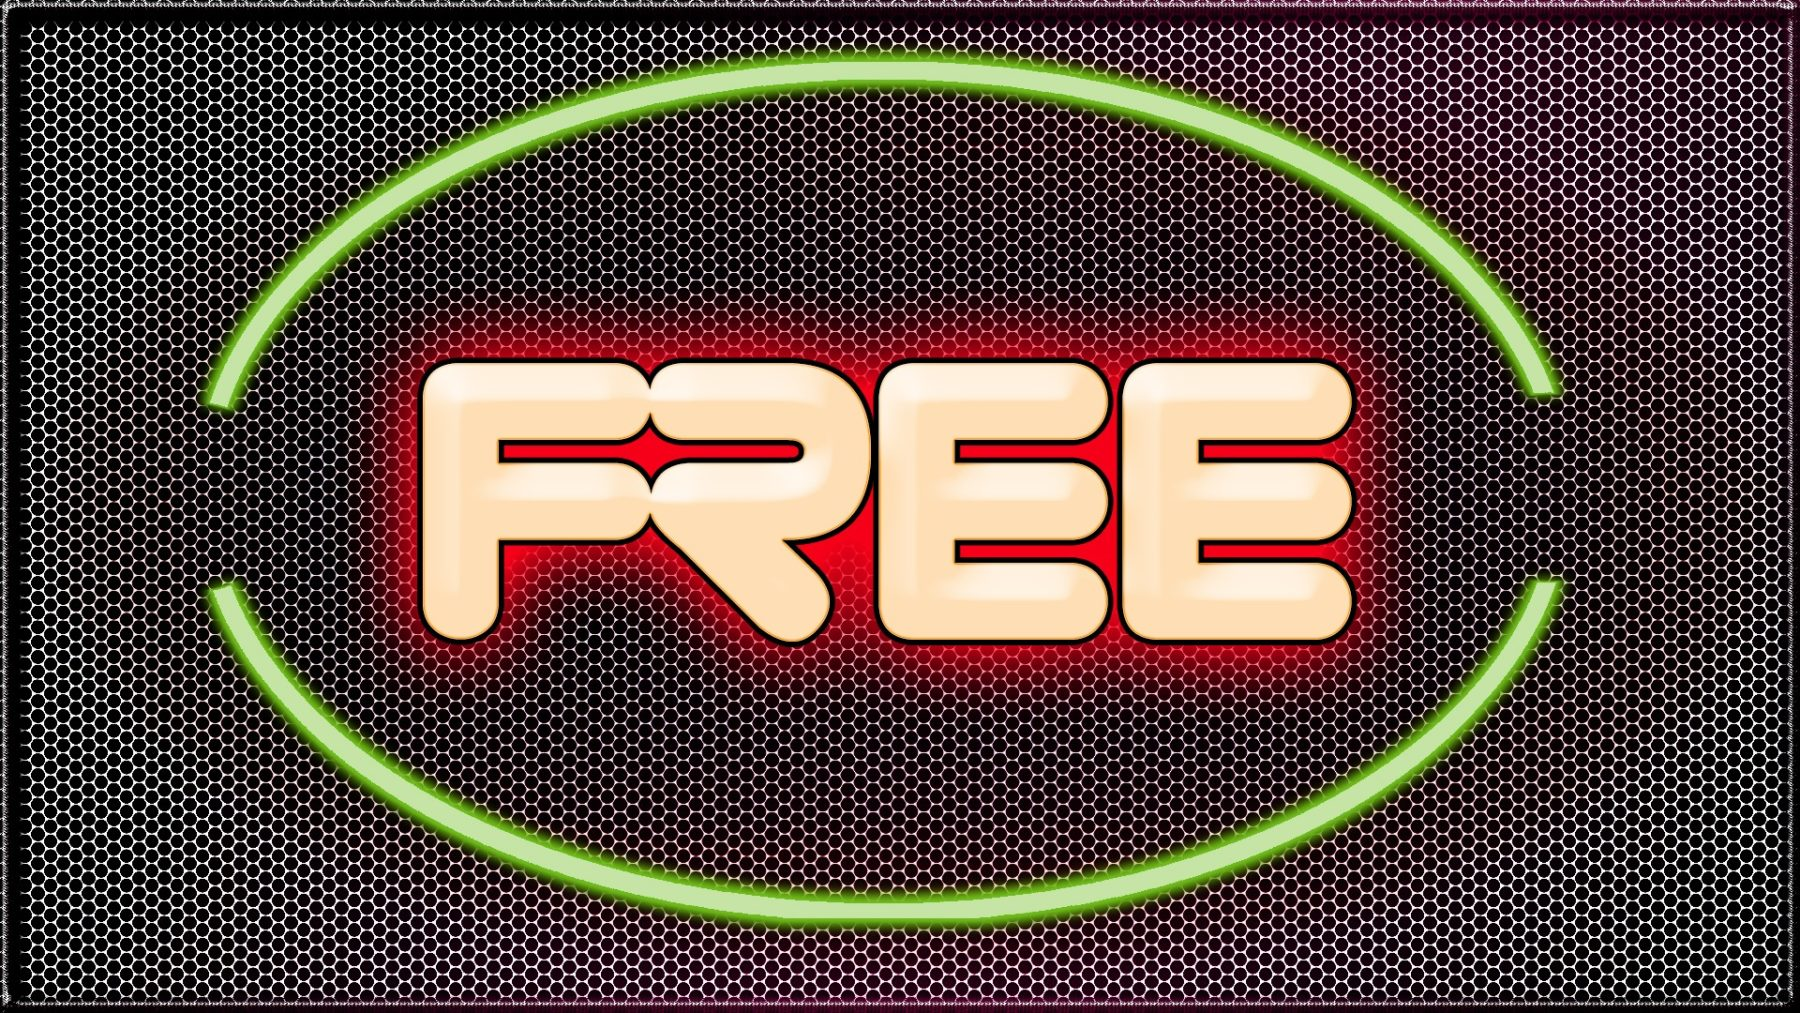 Second Thoughts About My Stance on Freebies